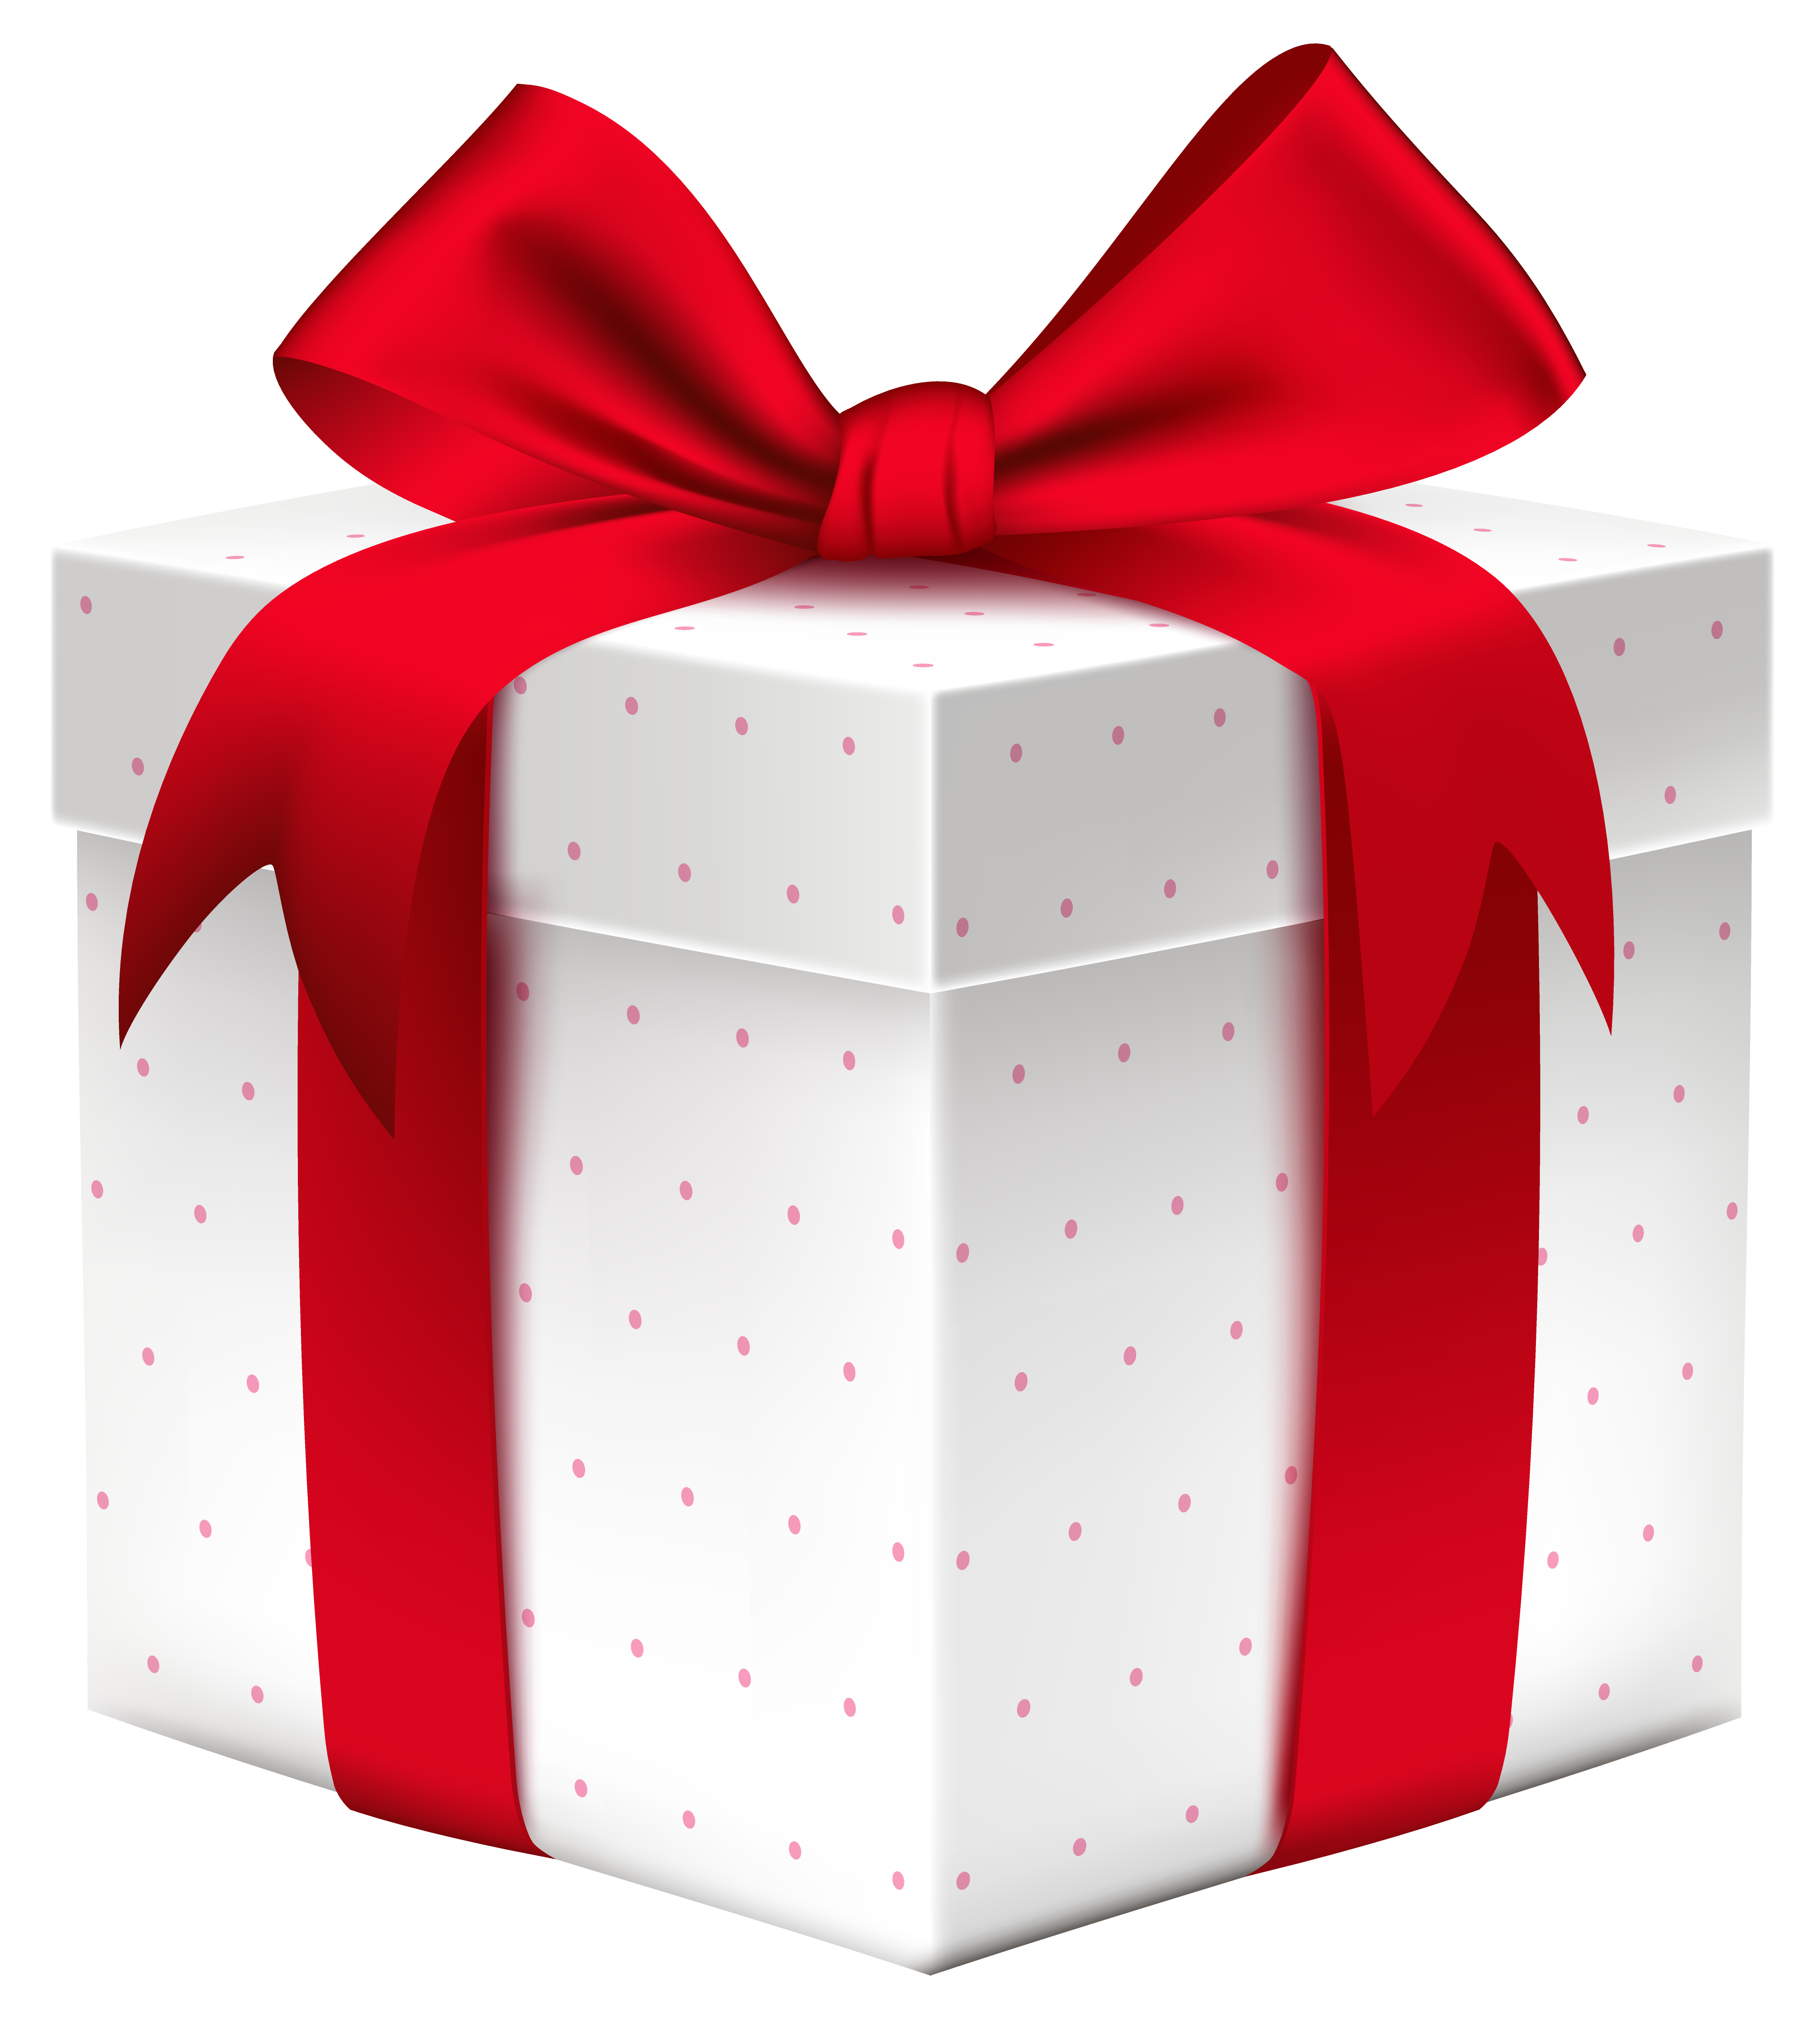 White Gift Box with Red Bow PNG Image.